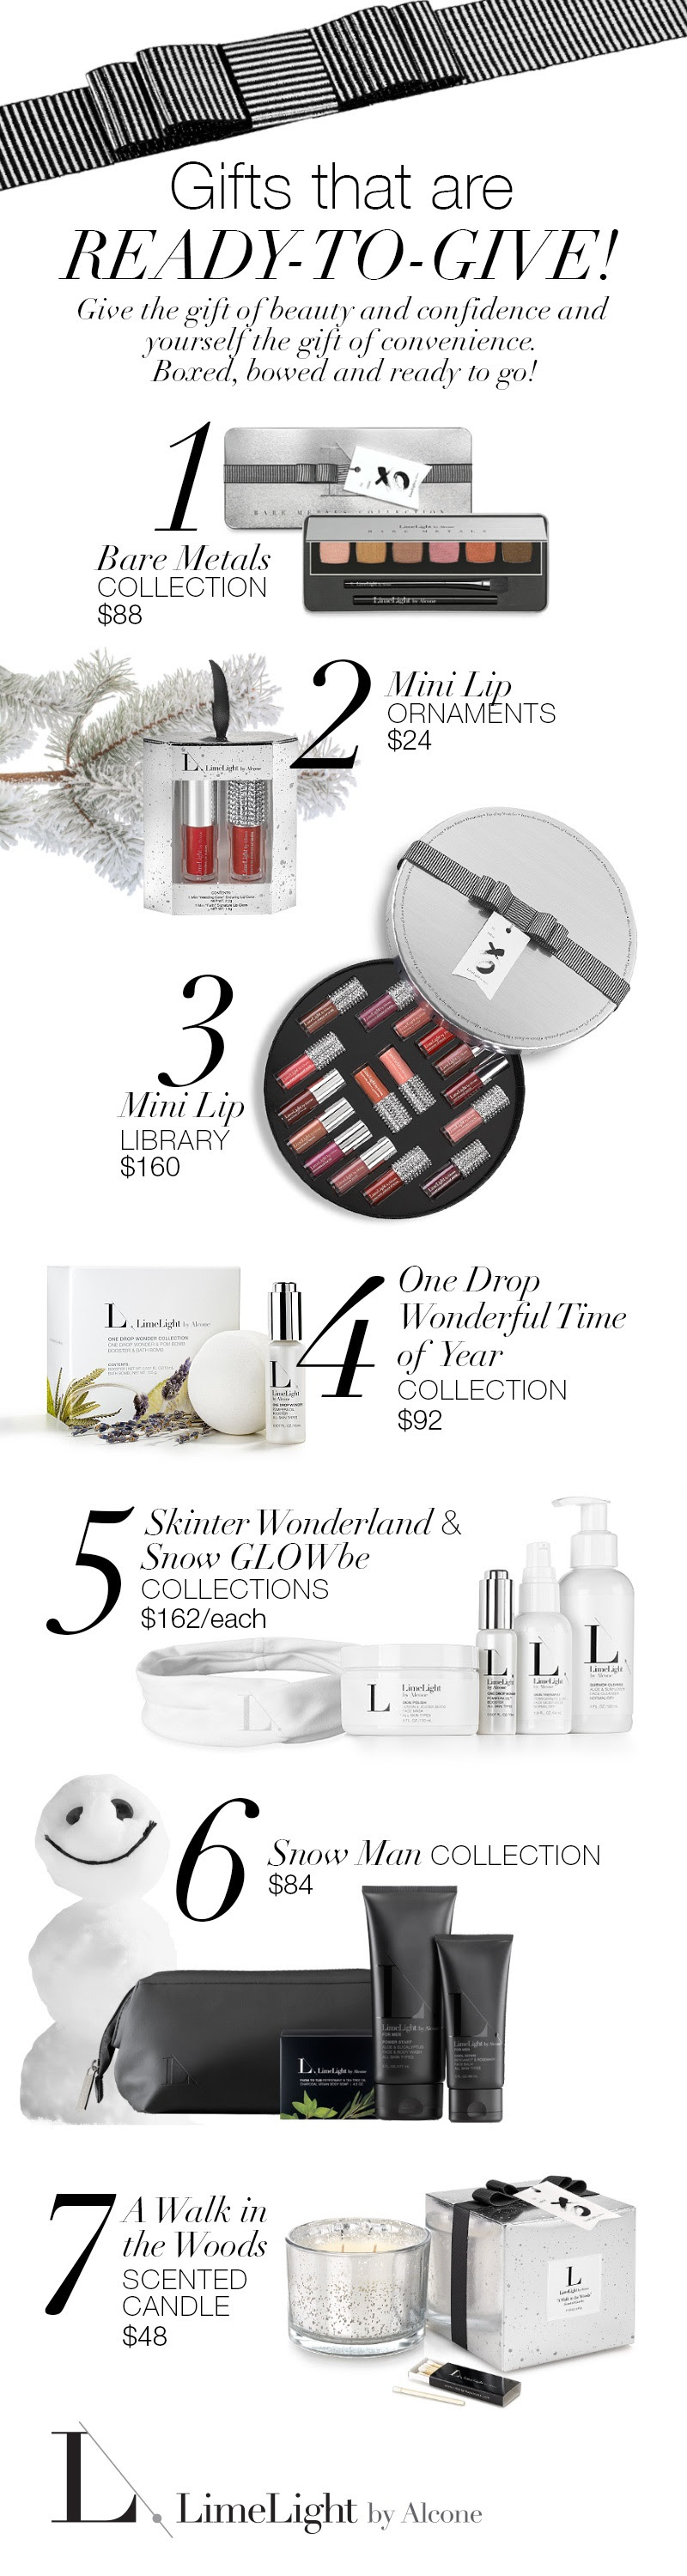 LimeLight Holiday Collections